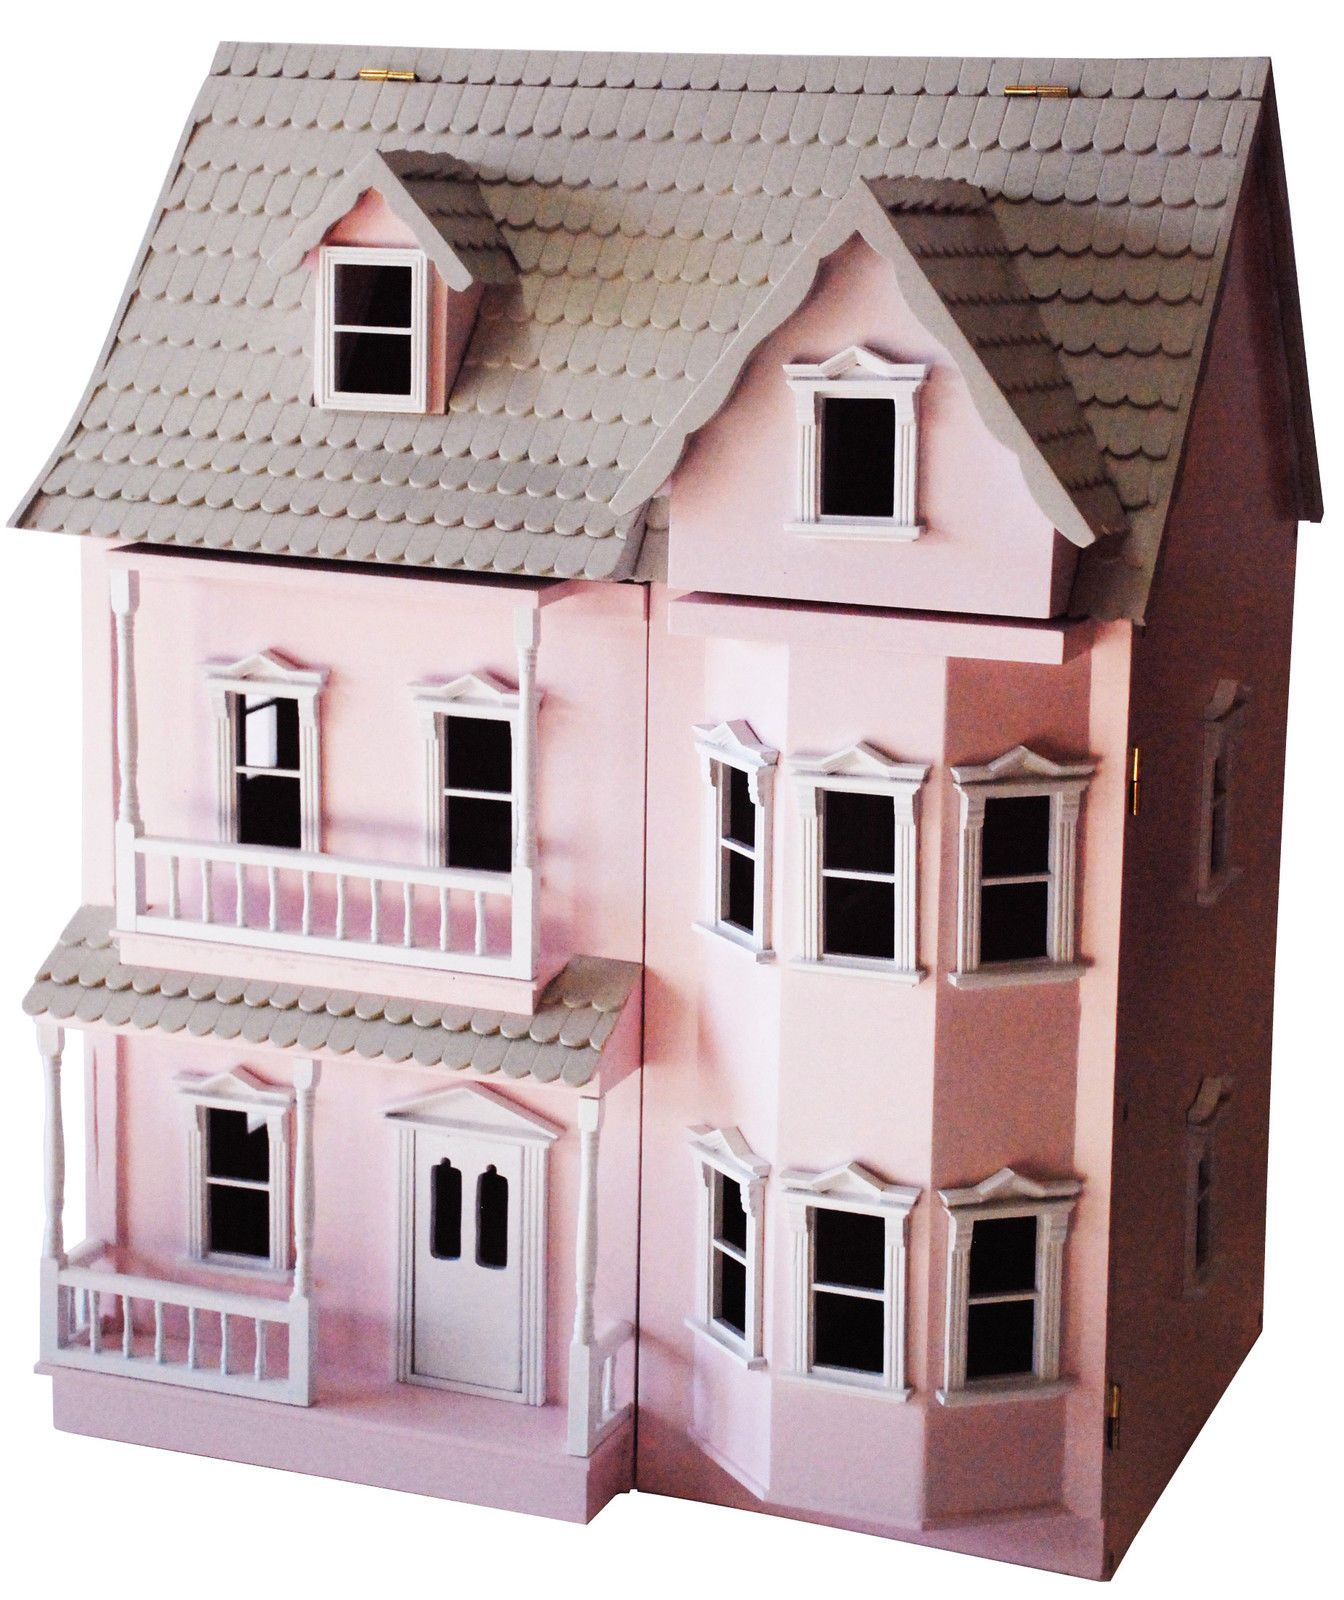 Pink Wooden Victorian Dollhouse High Quality On Sale Ebay Gifts